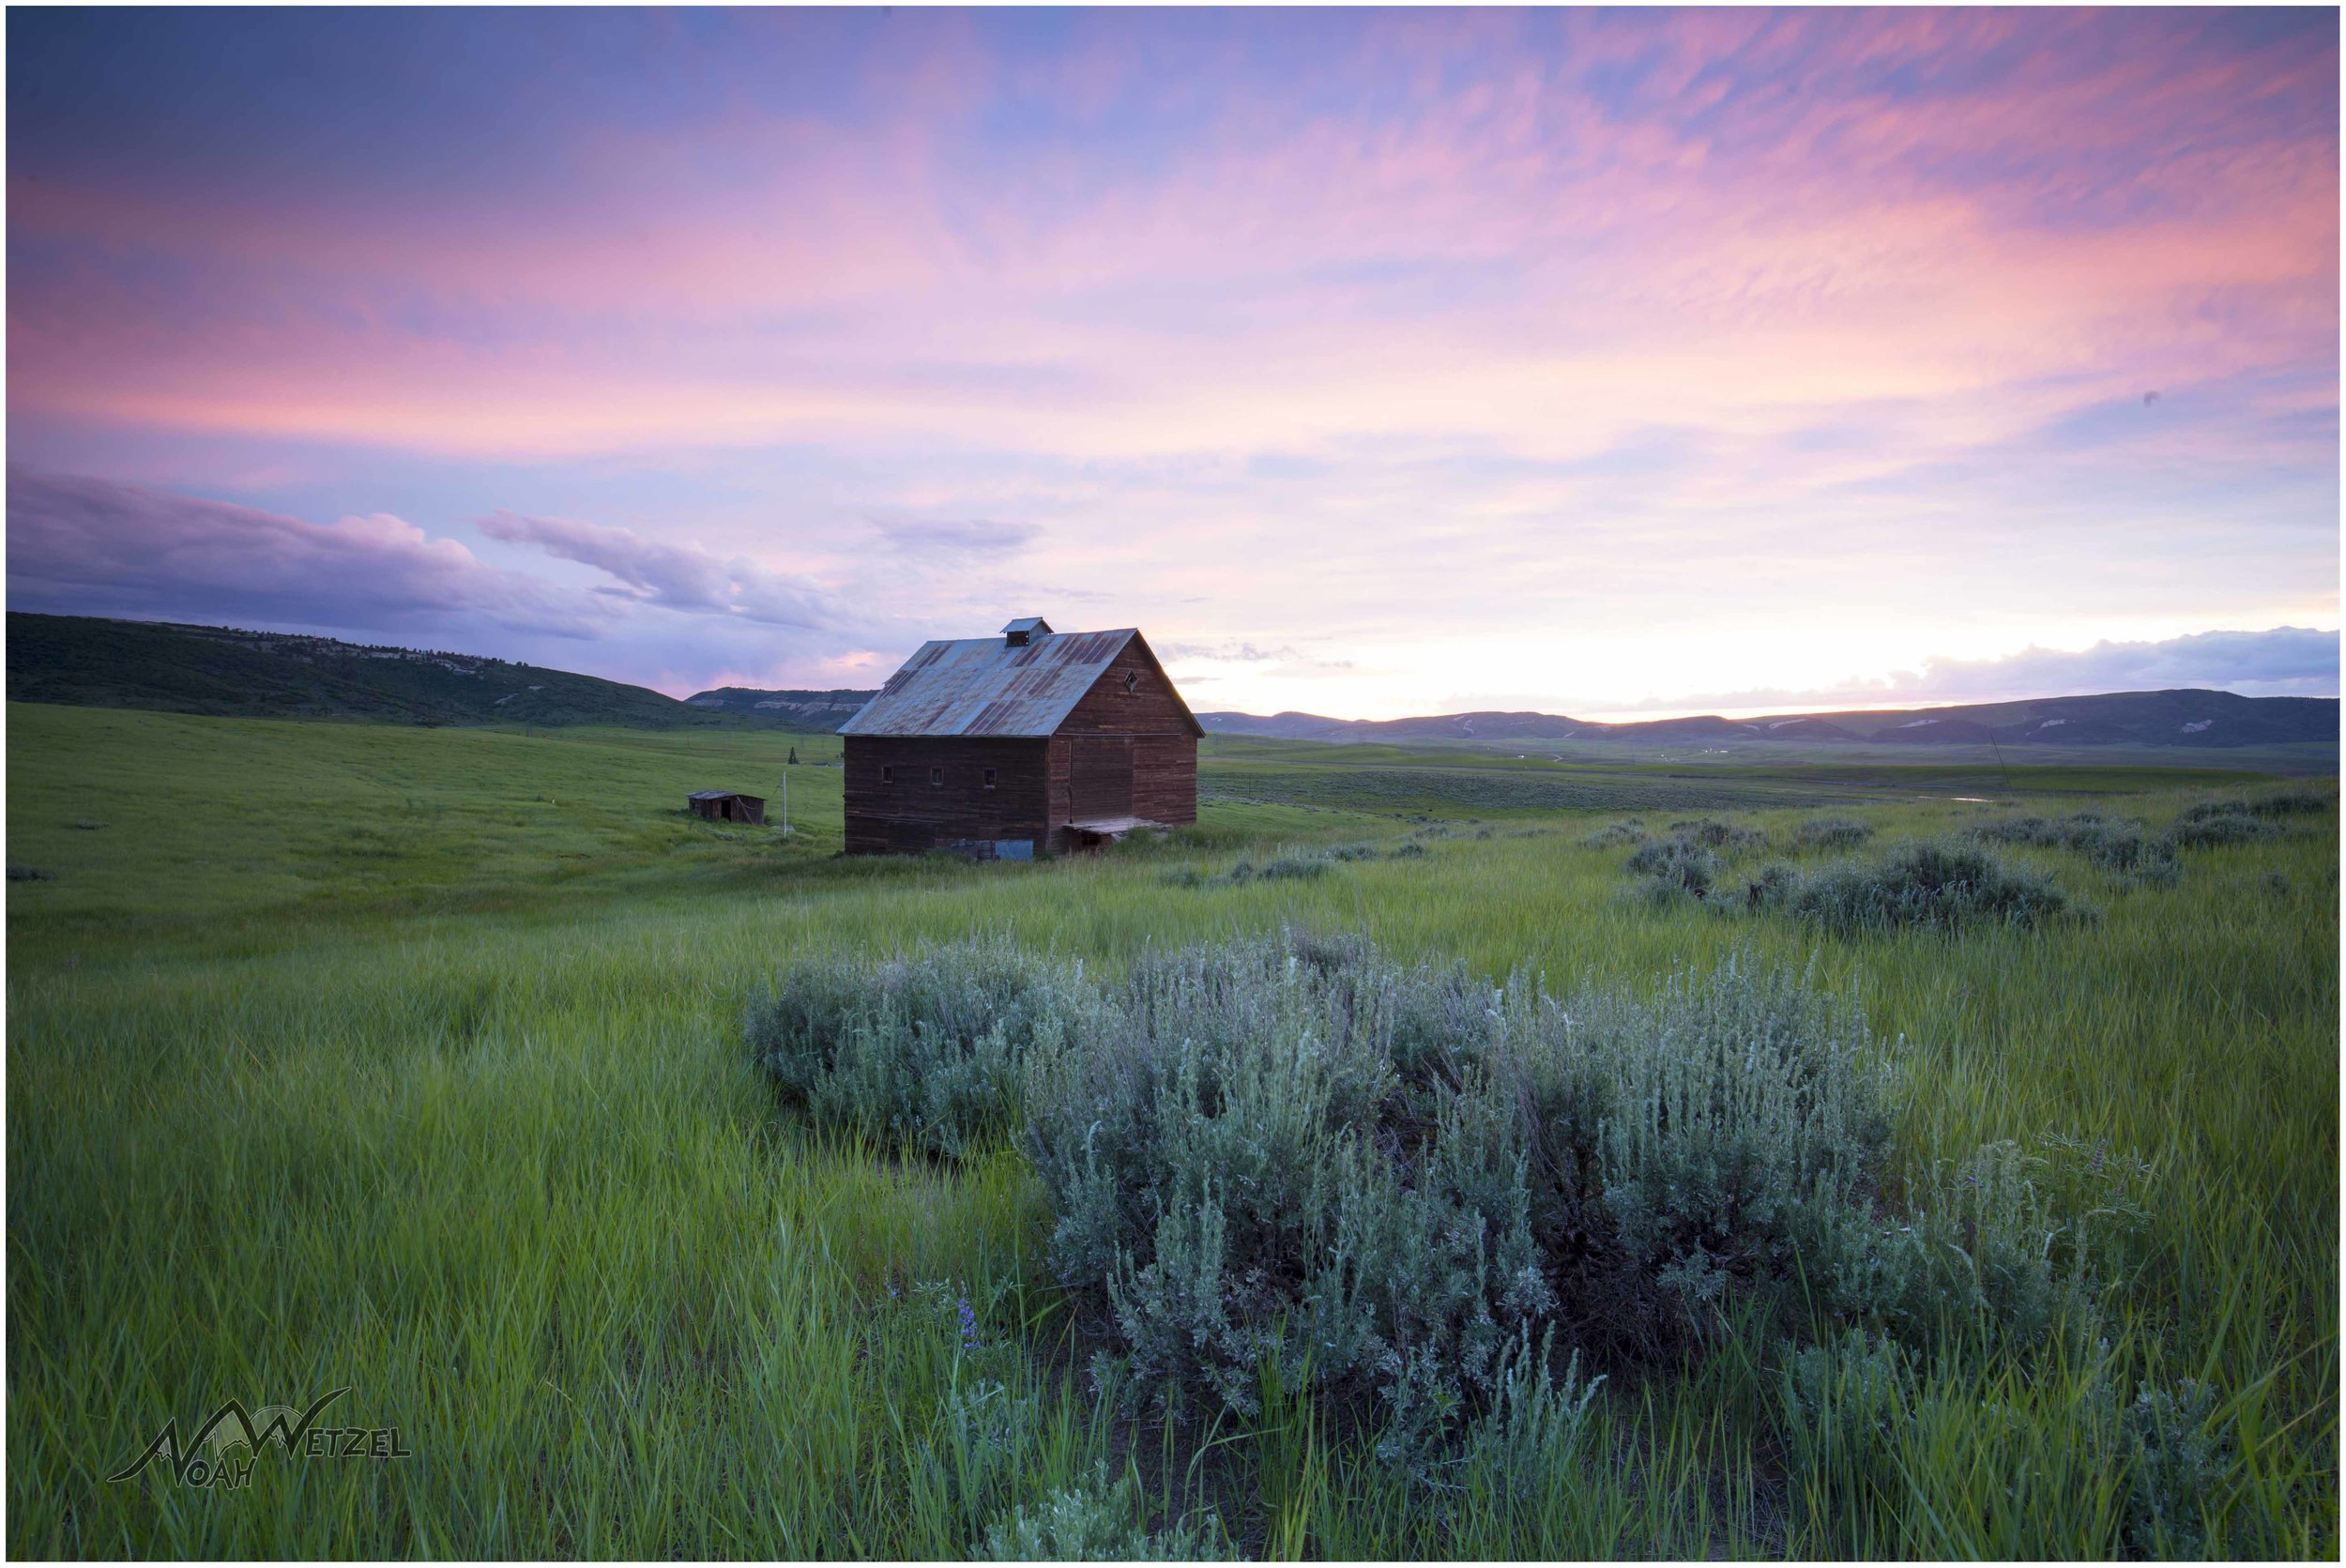 Barn Sunset. 20 Mile Rd. Steamboat Springs, Colorado